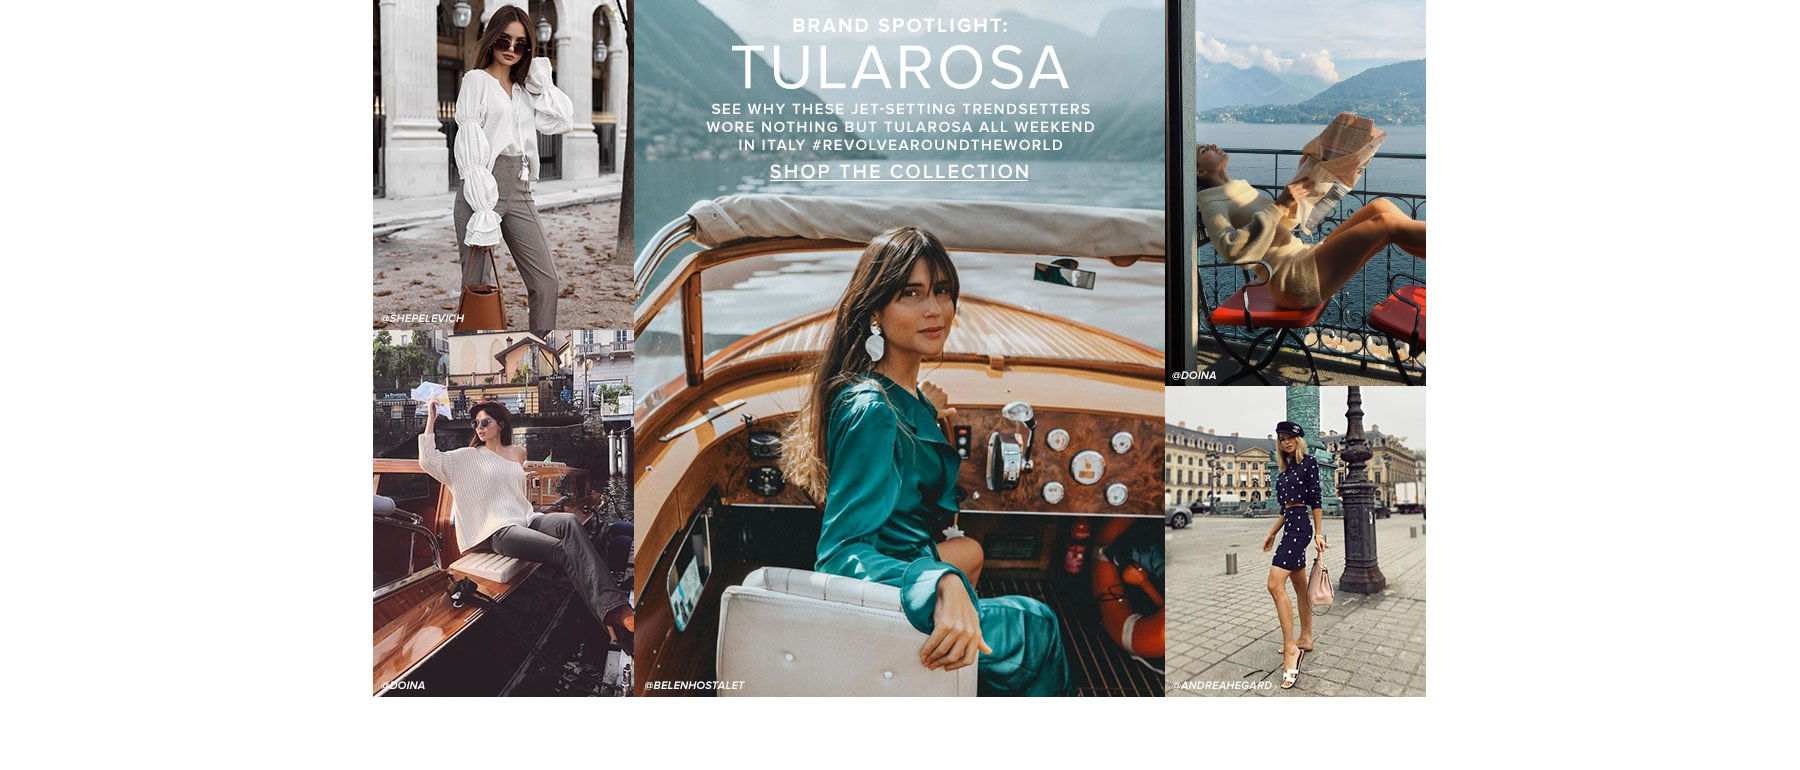 Brand Spotlight: Tularosa. See why these jet-setting trendsetters wore nothing but Tularosa all weekend in Italy REVOLVEaroundtheworld. Shop the Collection.